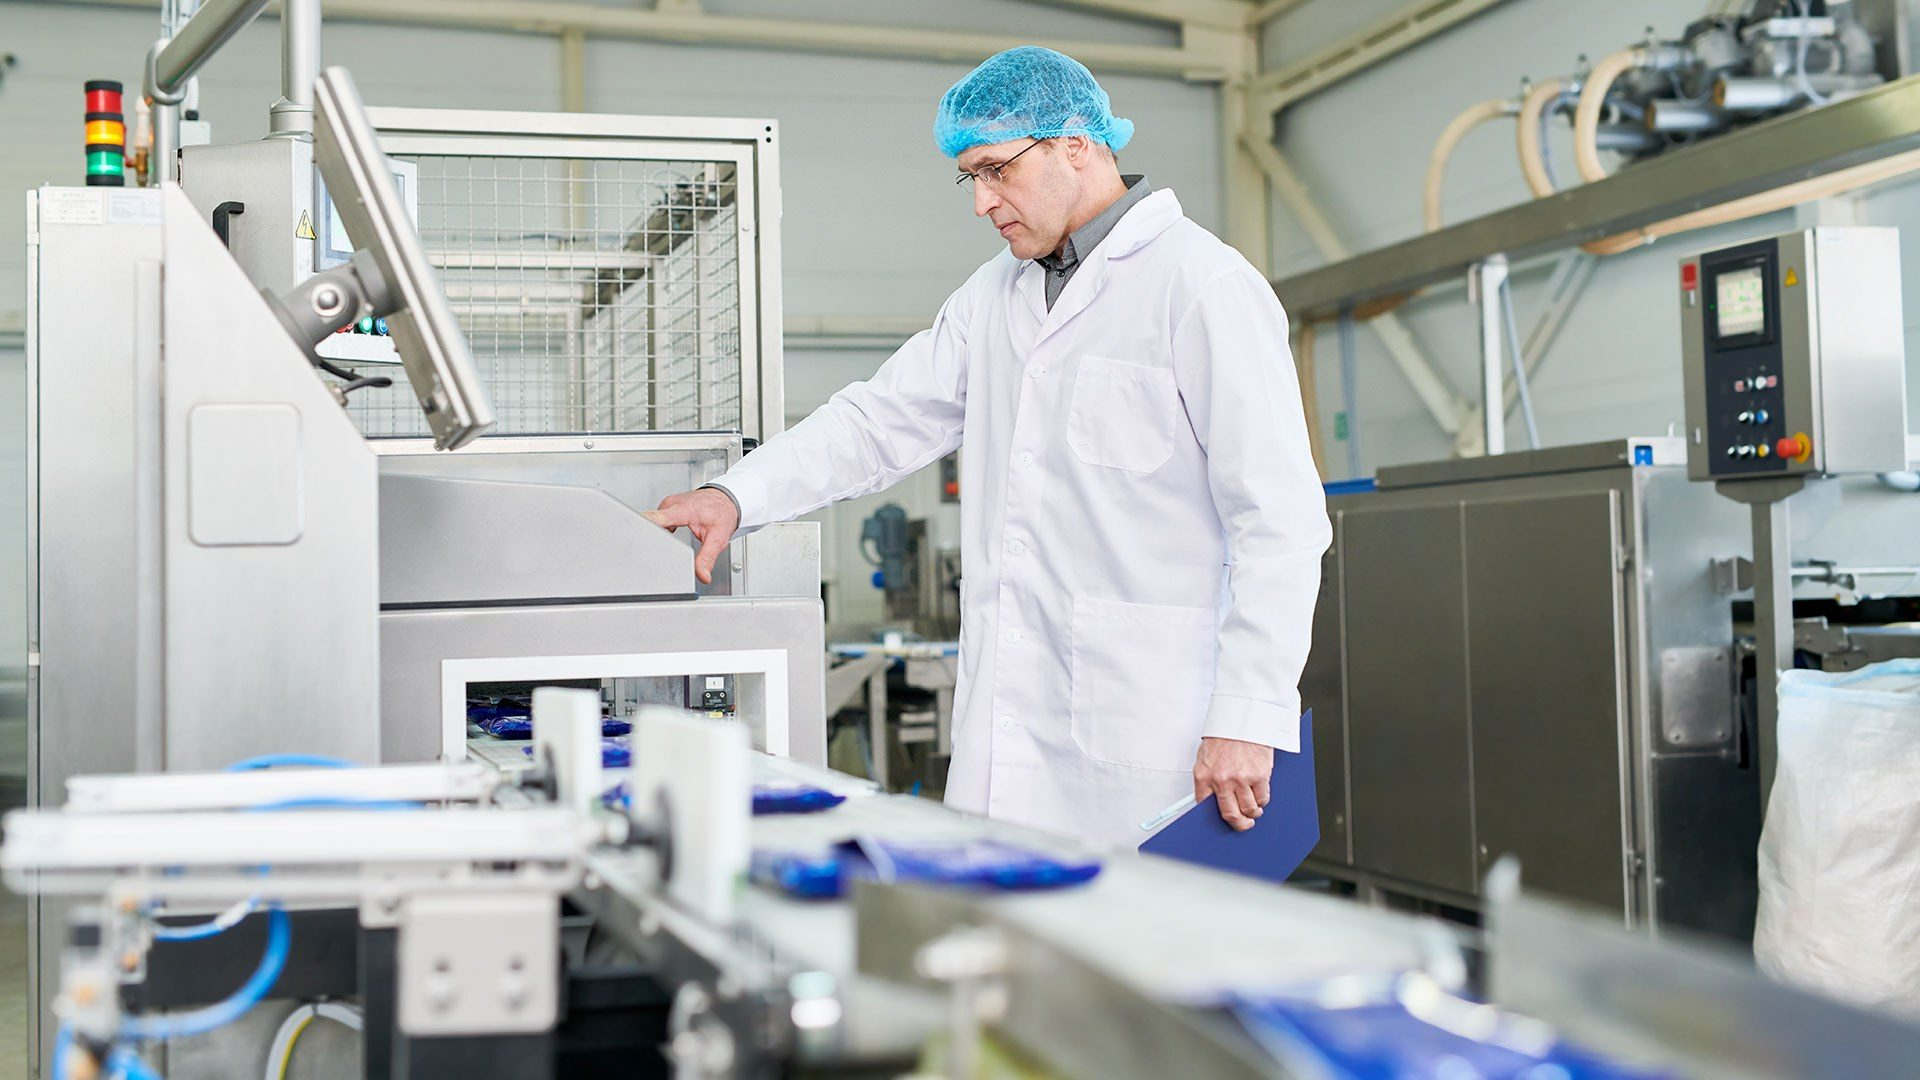 A photo of a food technologist inspecting the production line